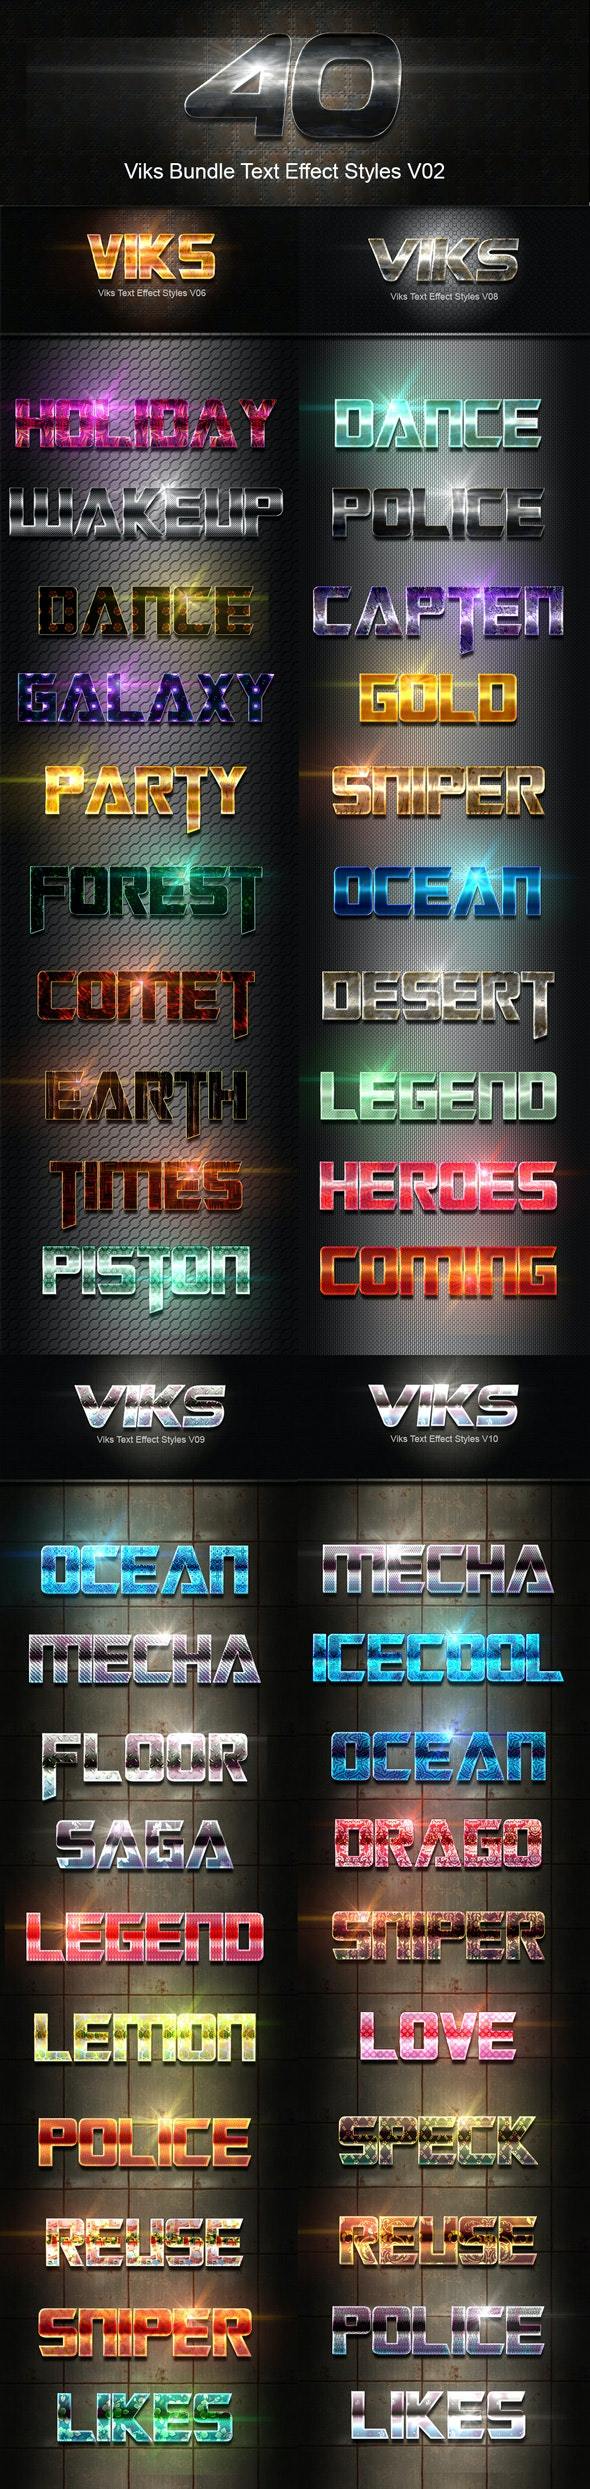 40 Viks Bundle Text Effect Styles V02 - Text Effects Styles